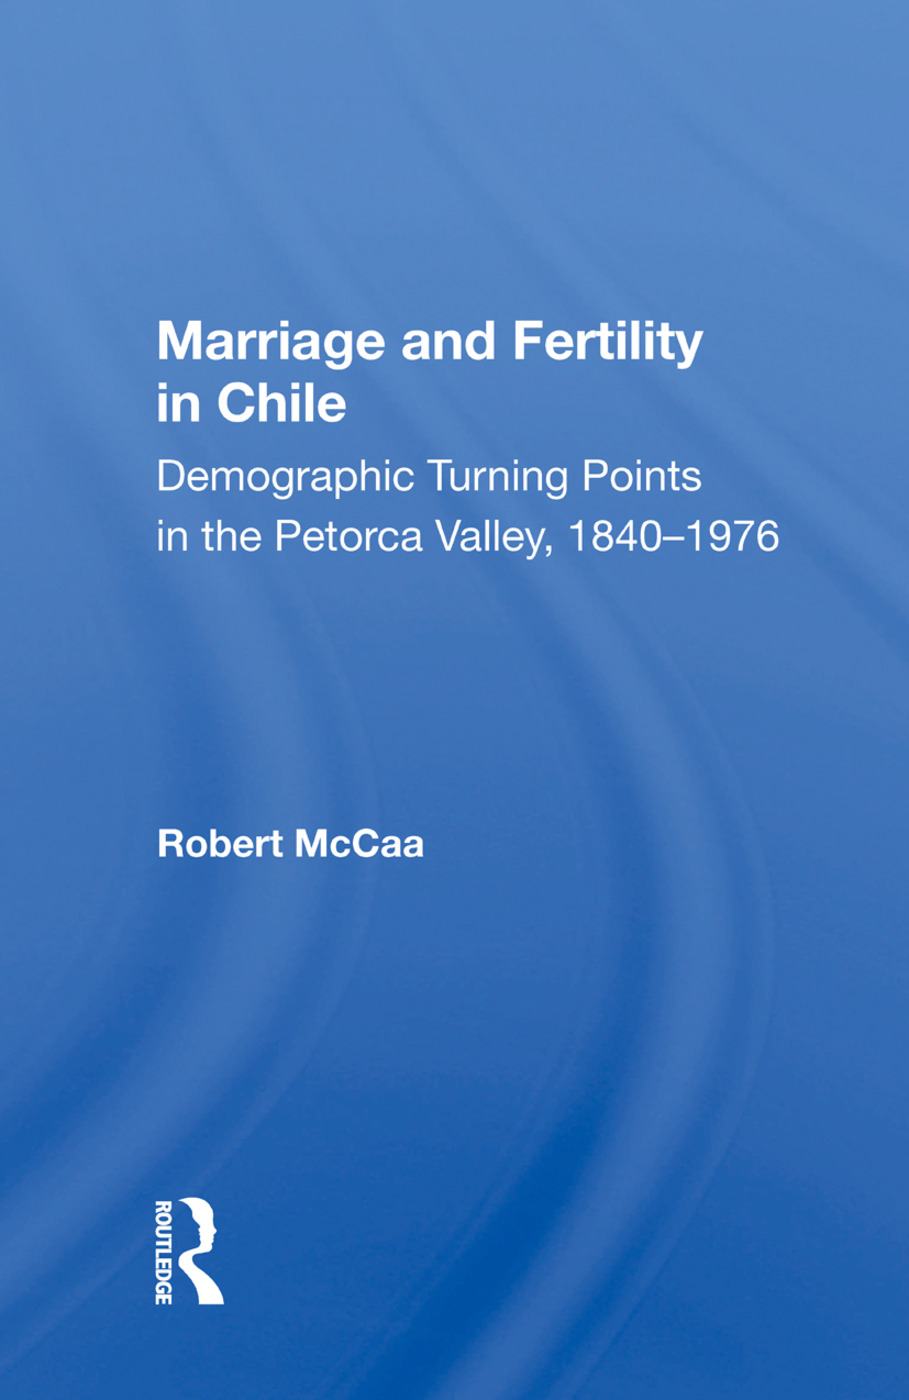 Marriage and Fertility in Chile